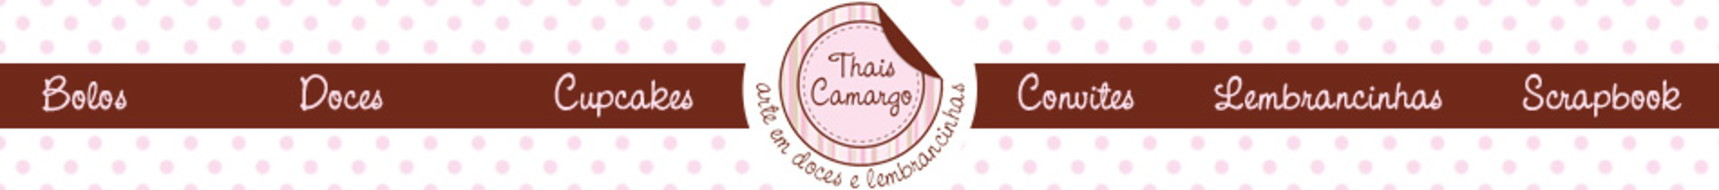 Thais Camargo